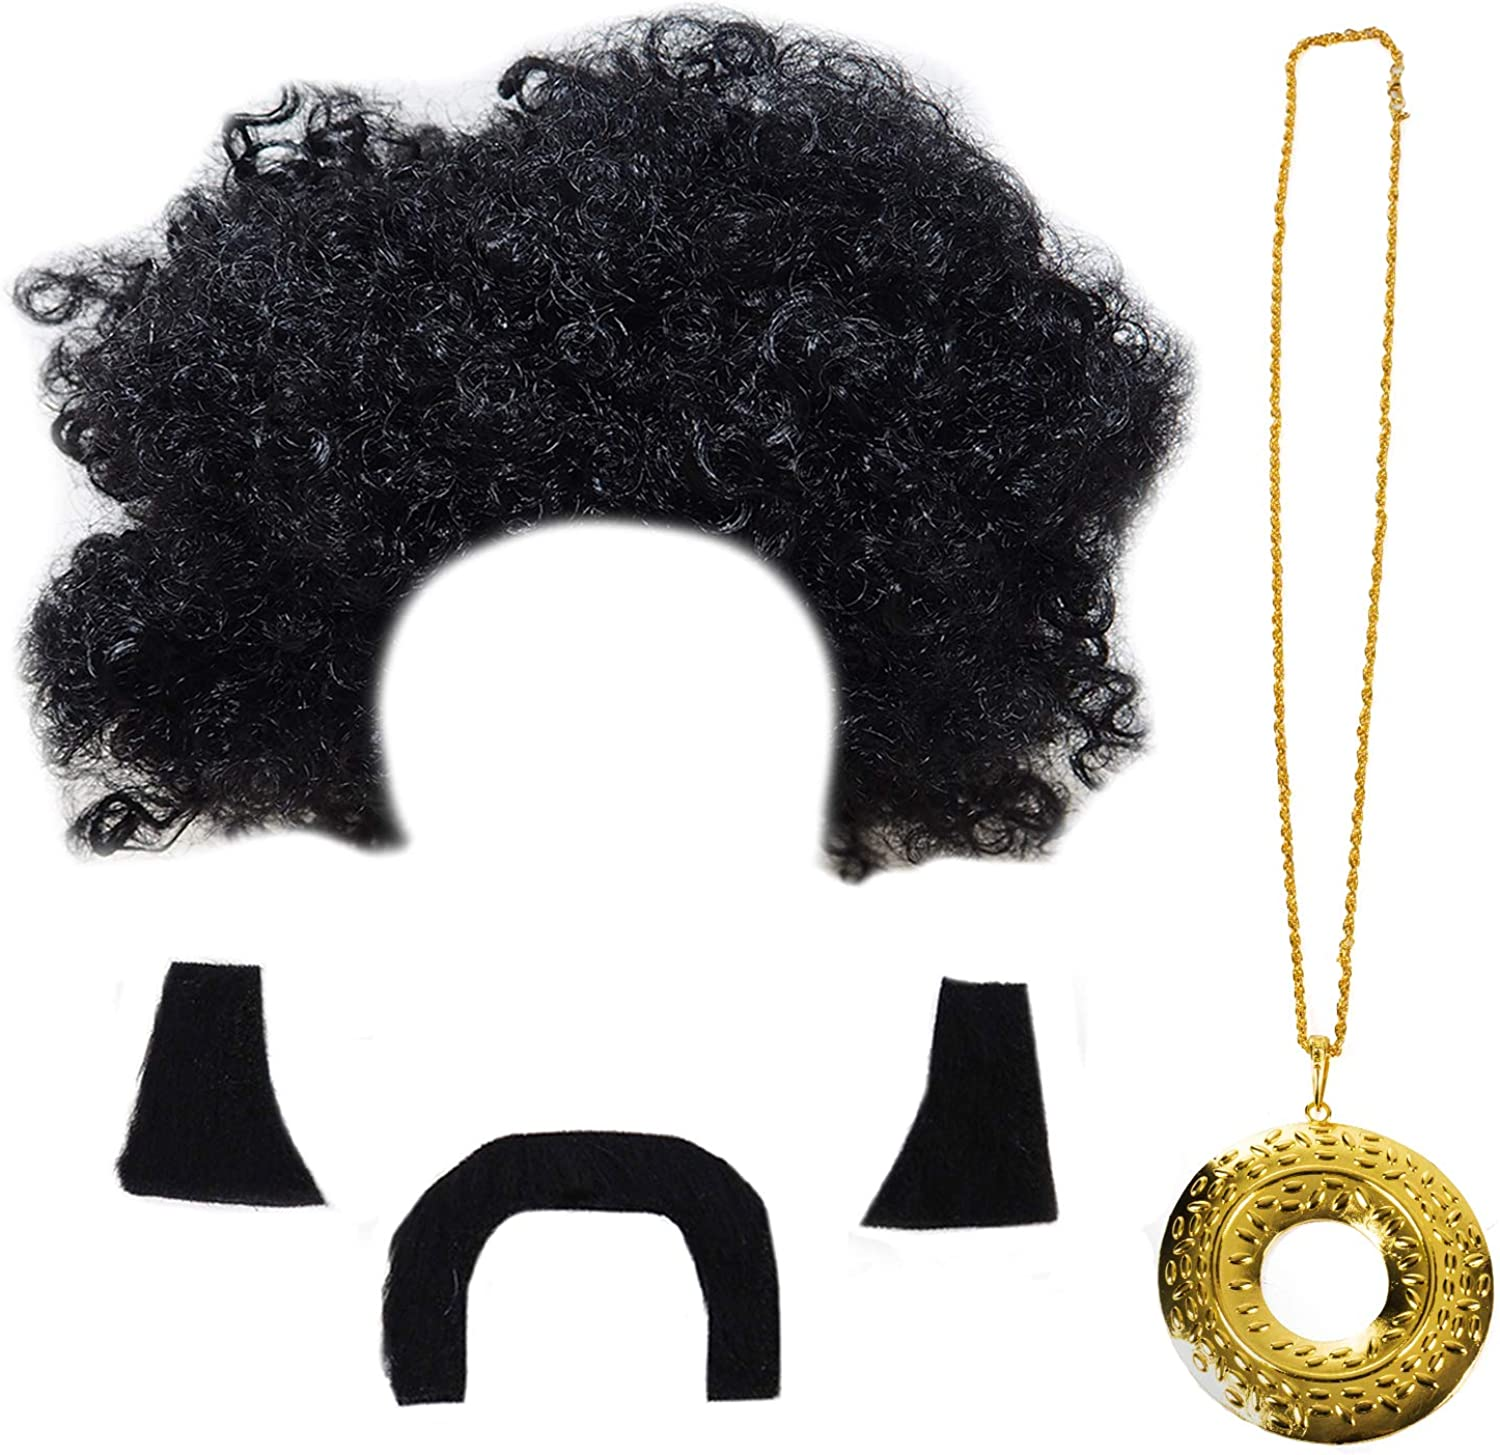 70s Funky Black Wig Adult Afro 1970s 80s Disco Costume Party Curly Hippie Wigs